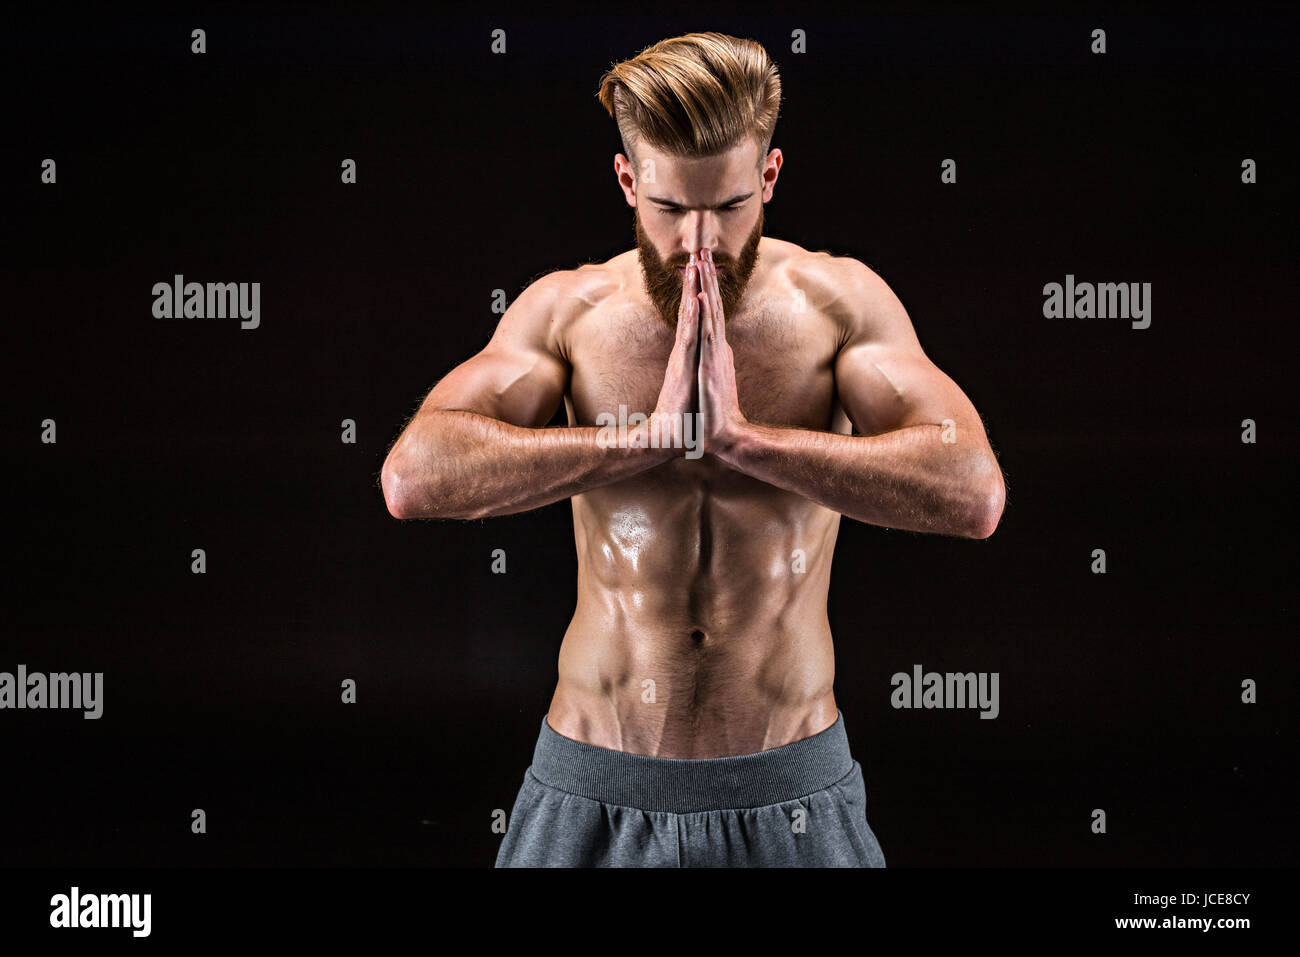 Man In Yoga Pose With Namaste Gesture In Relaxation Yoga Classroom